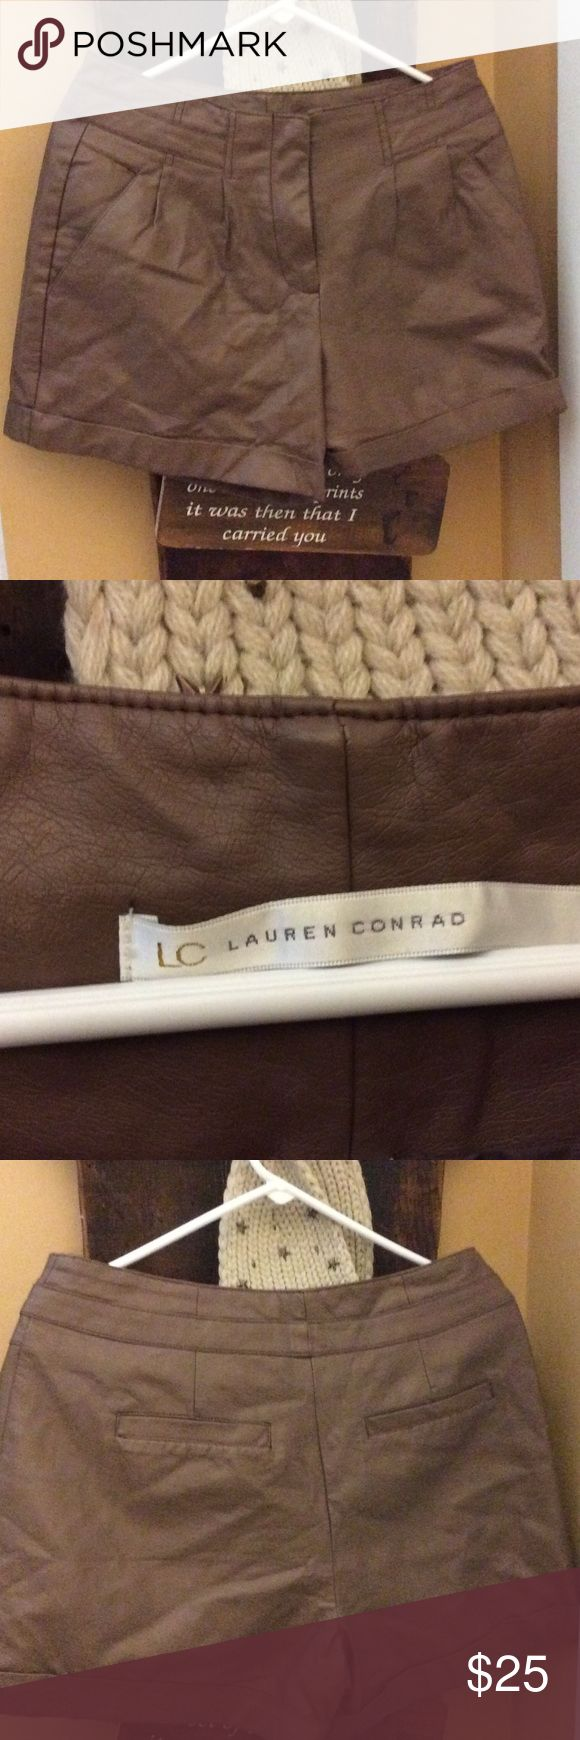 Lauren Conrad leather look shorts Cute Lauren Conrad leather look shorts Zips in  front Pockets in front and back Cuffed hem  New without tags coating is polyurethane face fabric 100% rayon lining 100% polyester Lined inside LC Lauren Conrad Shorts